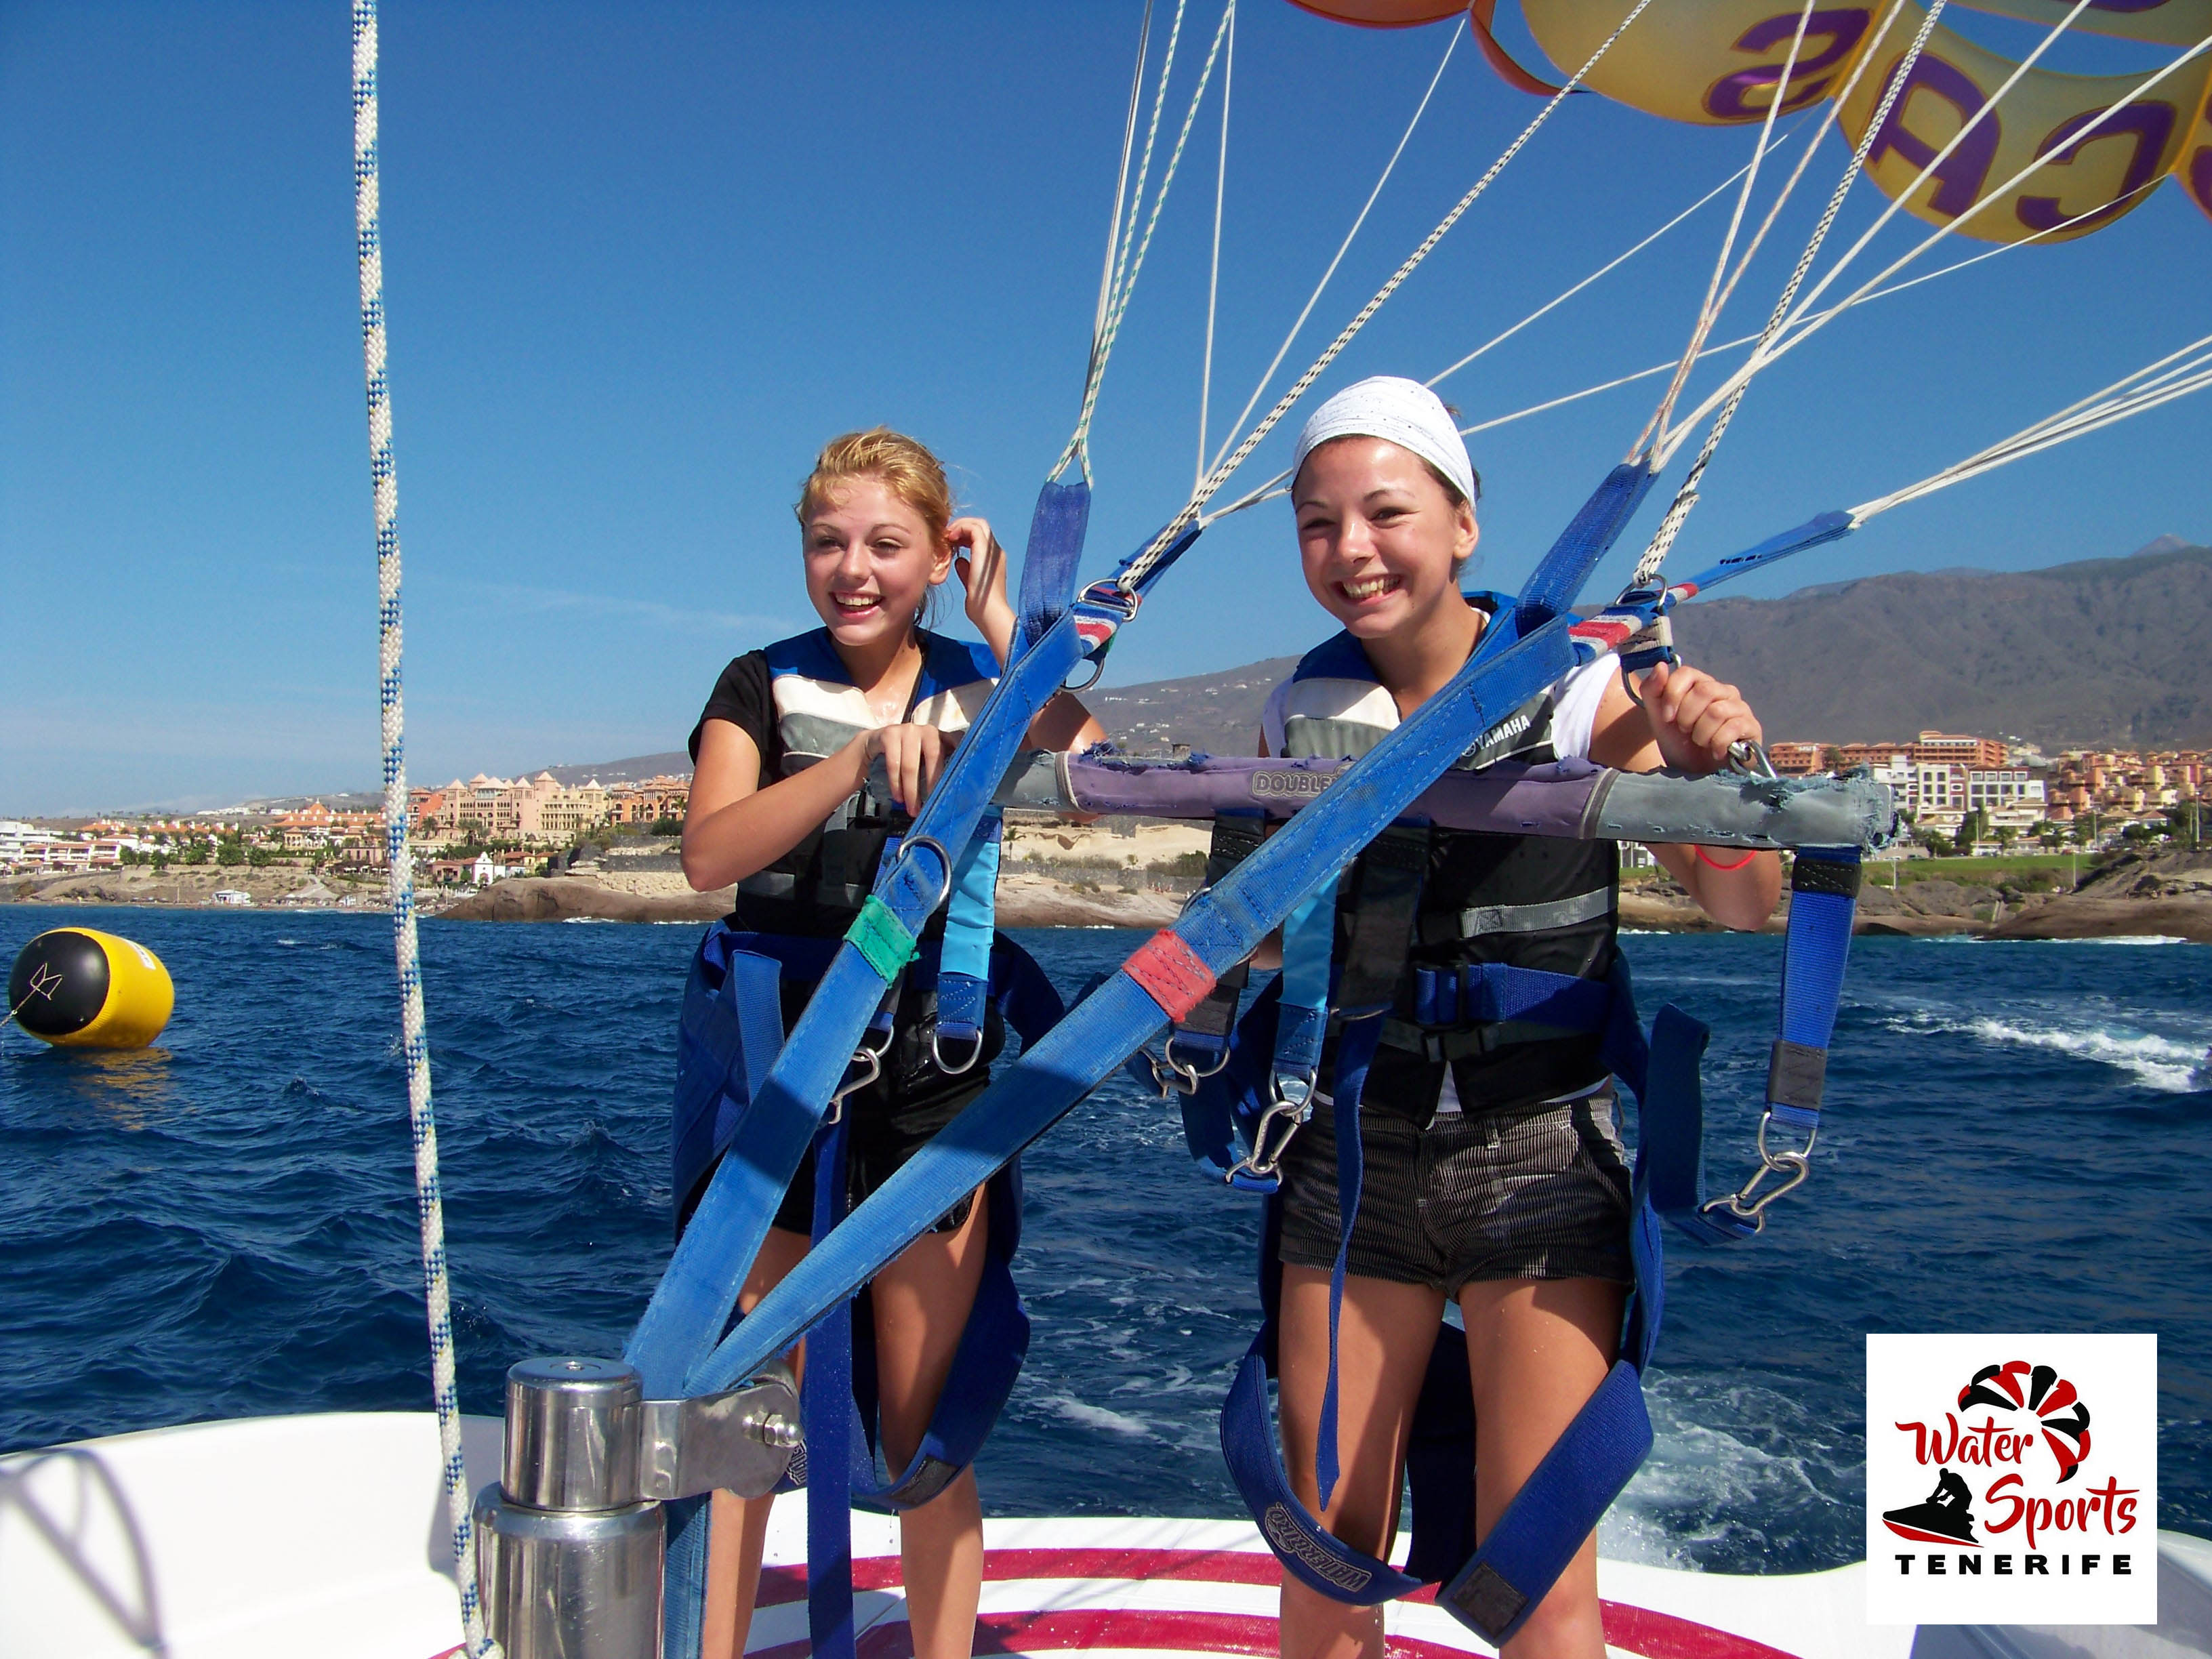 parascending in adeje arona water sports and activities